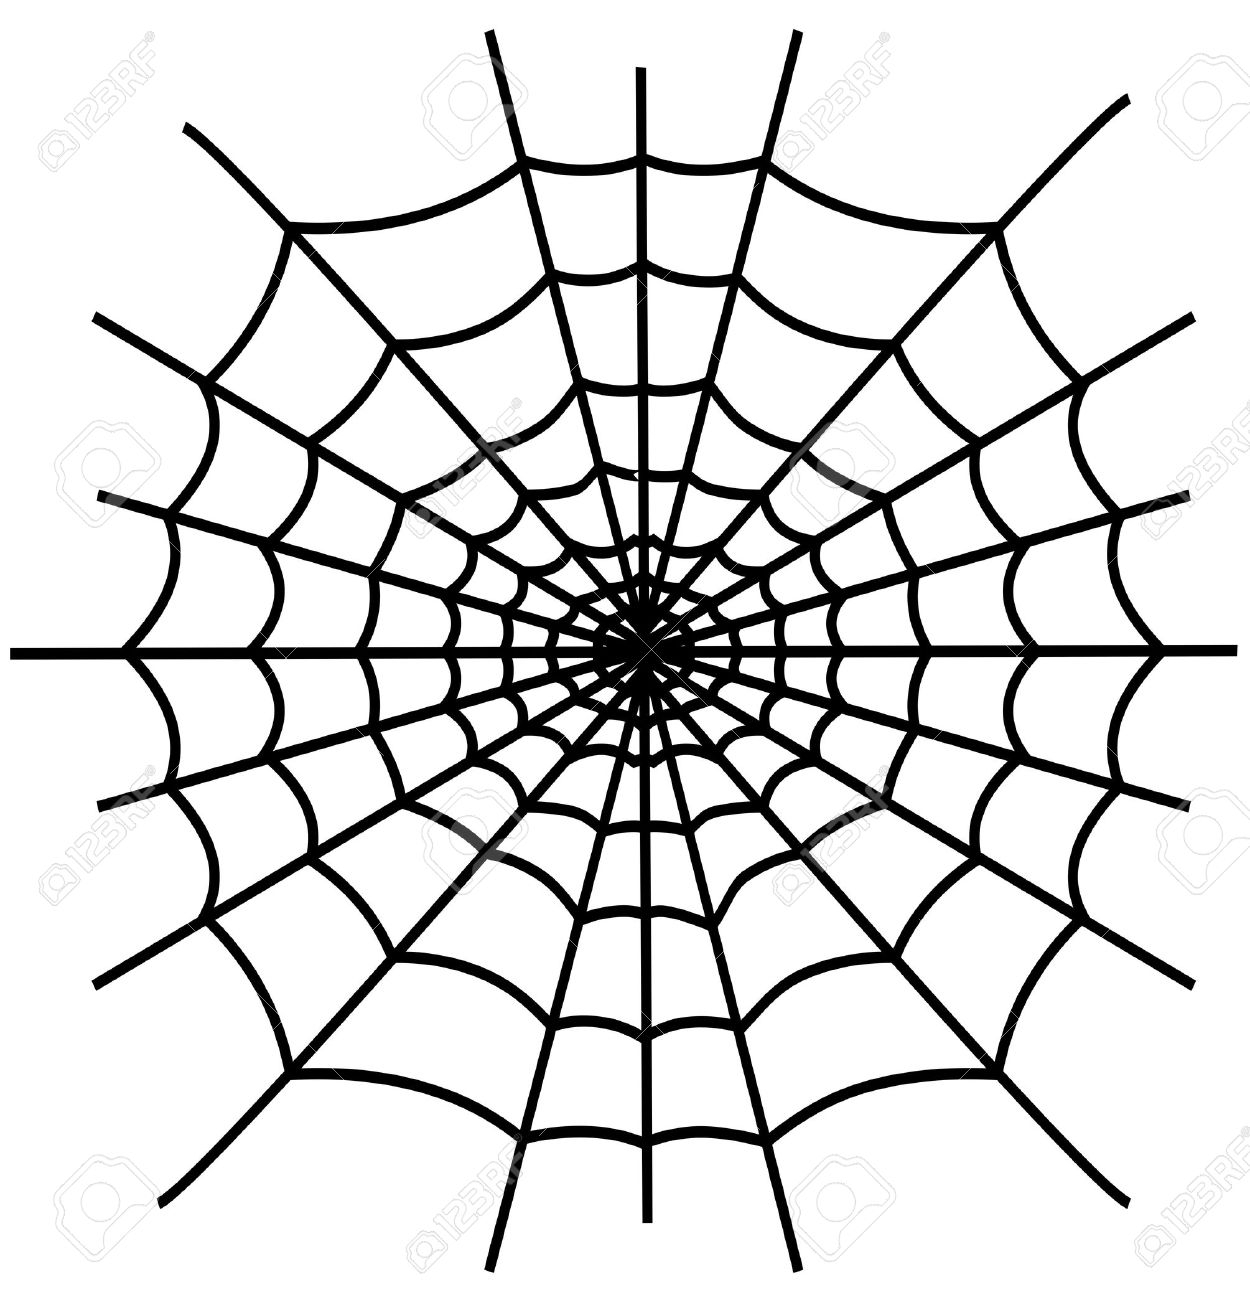 1250x1300 Spider Web Cartoon Drawing Black Spiderweb Isolated On White